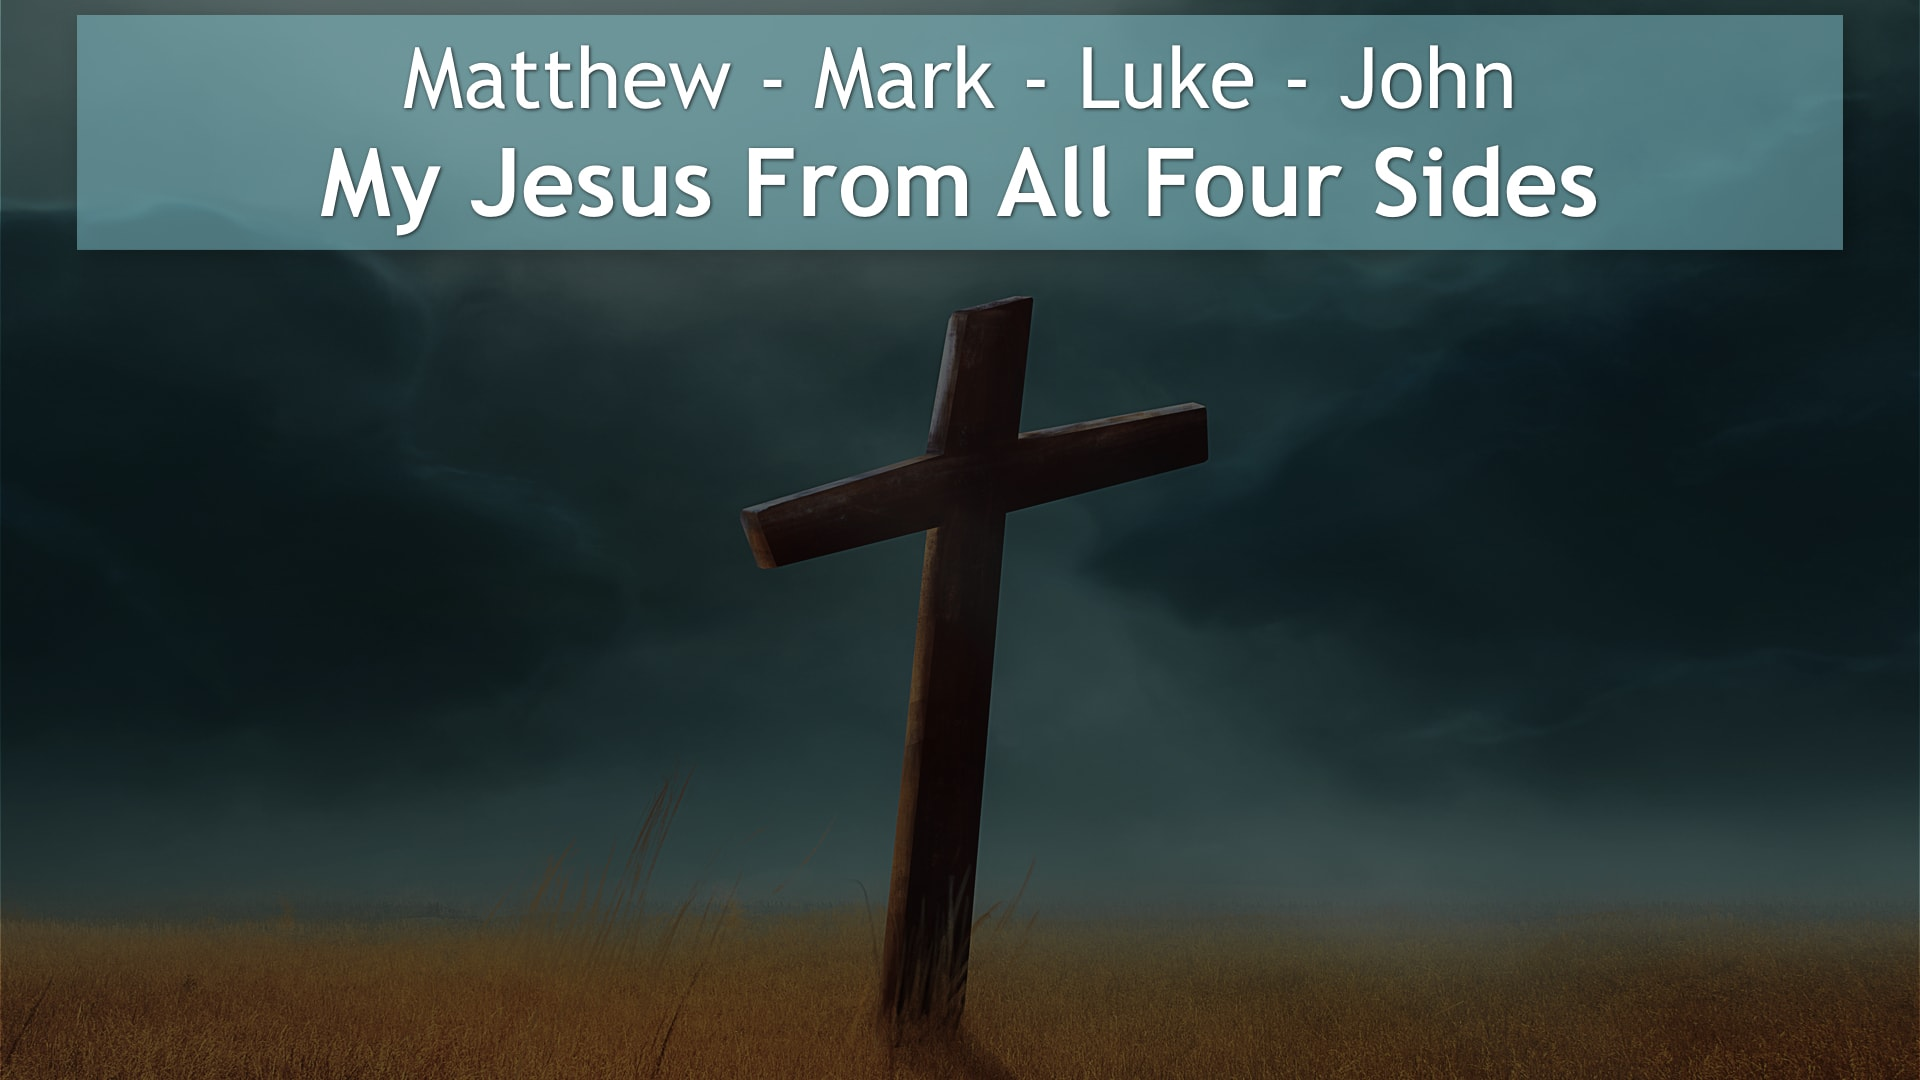 Four Gospels, My Jesus From All Four Sides